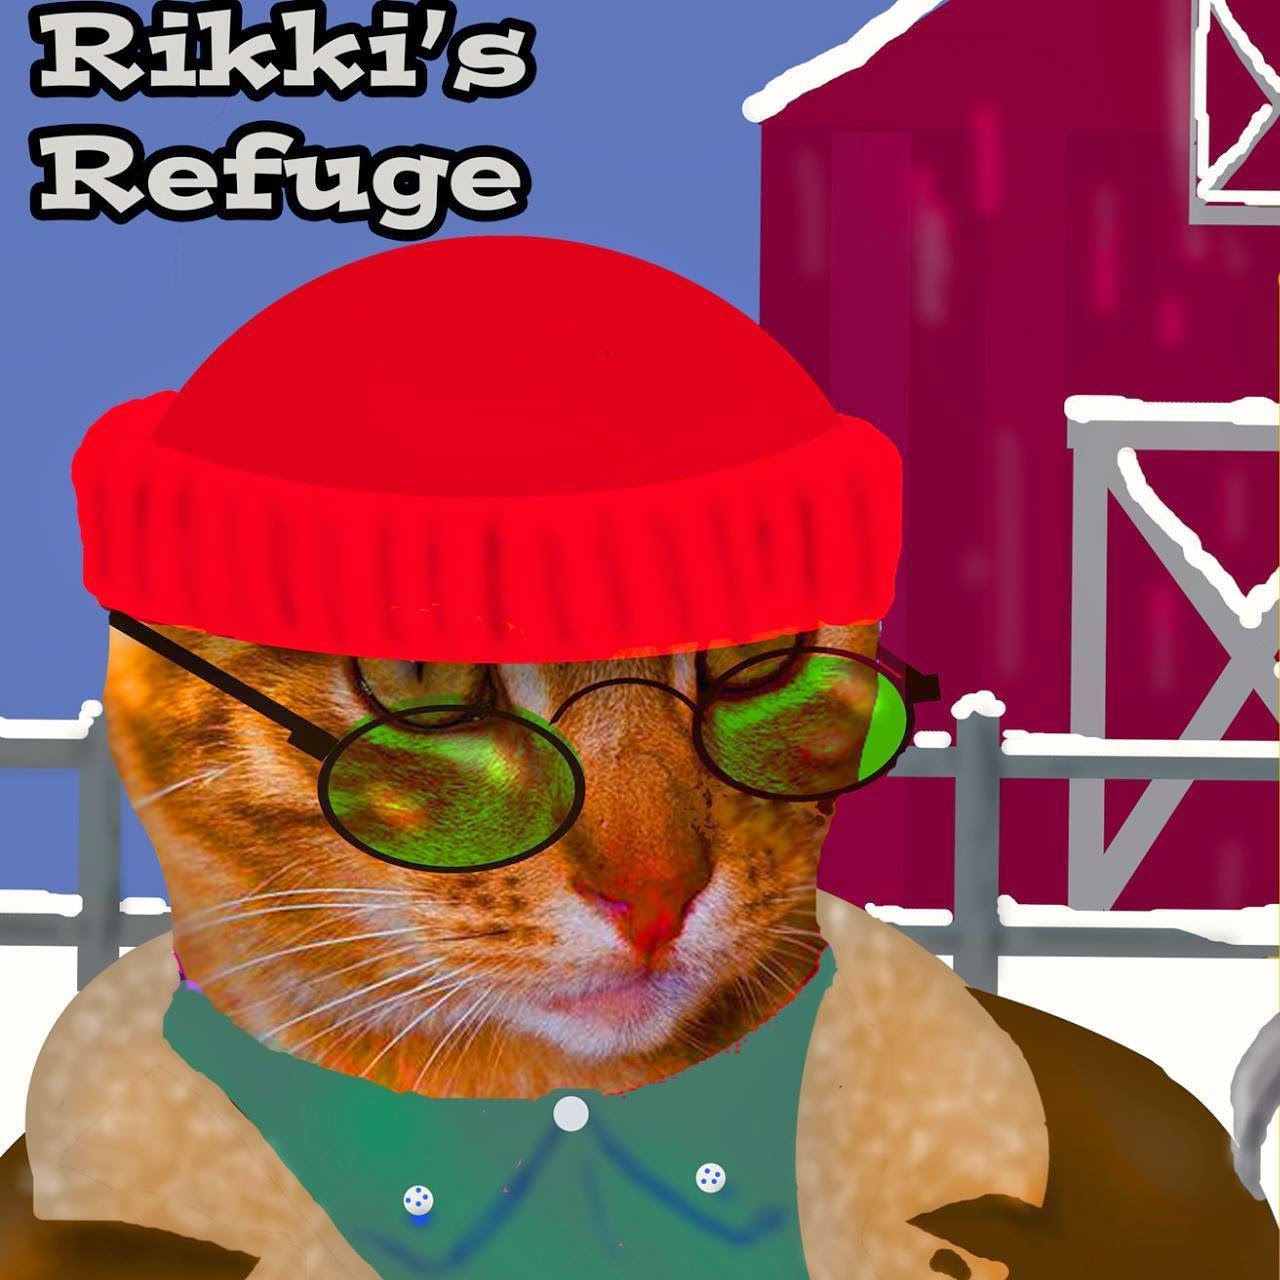 www.RikkisRefuge.org/Donate